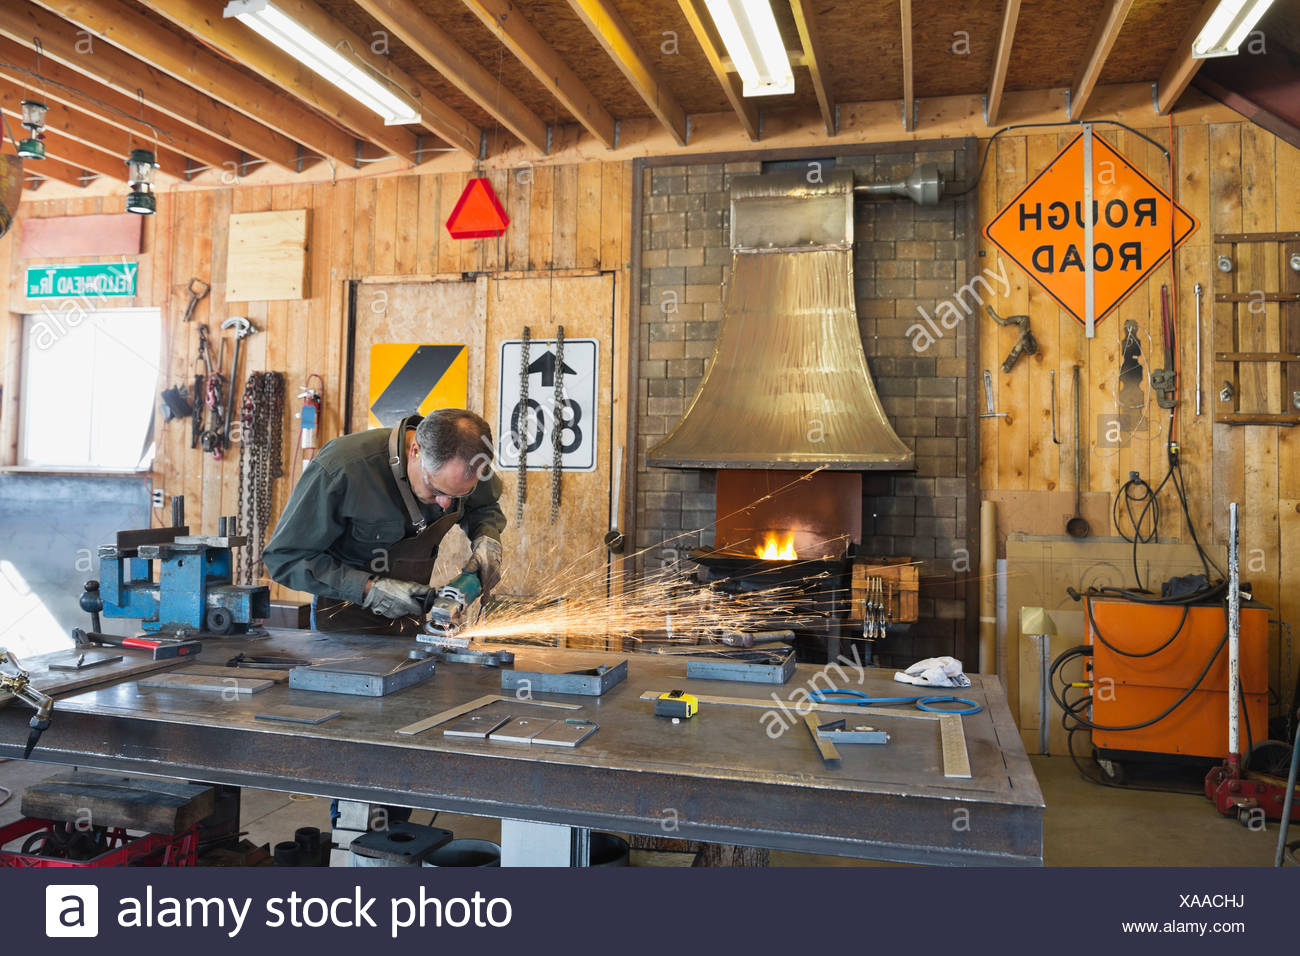 Worker grinding metal at workbench - Stock Image